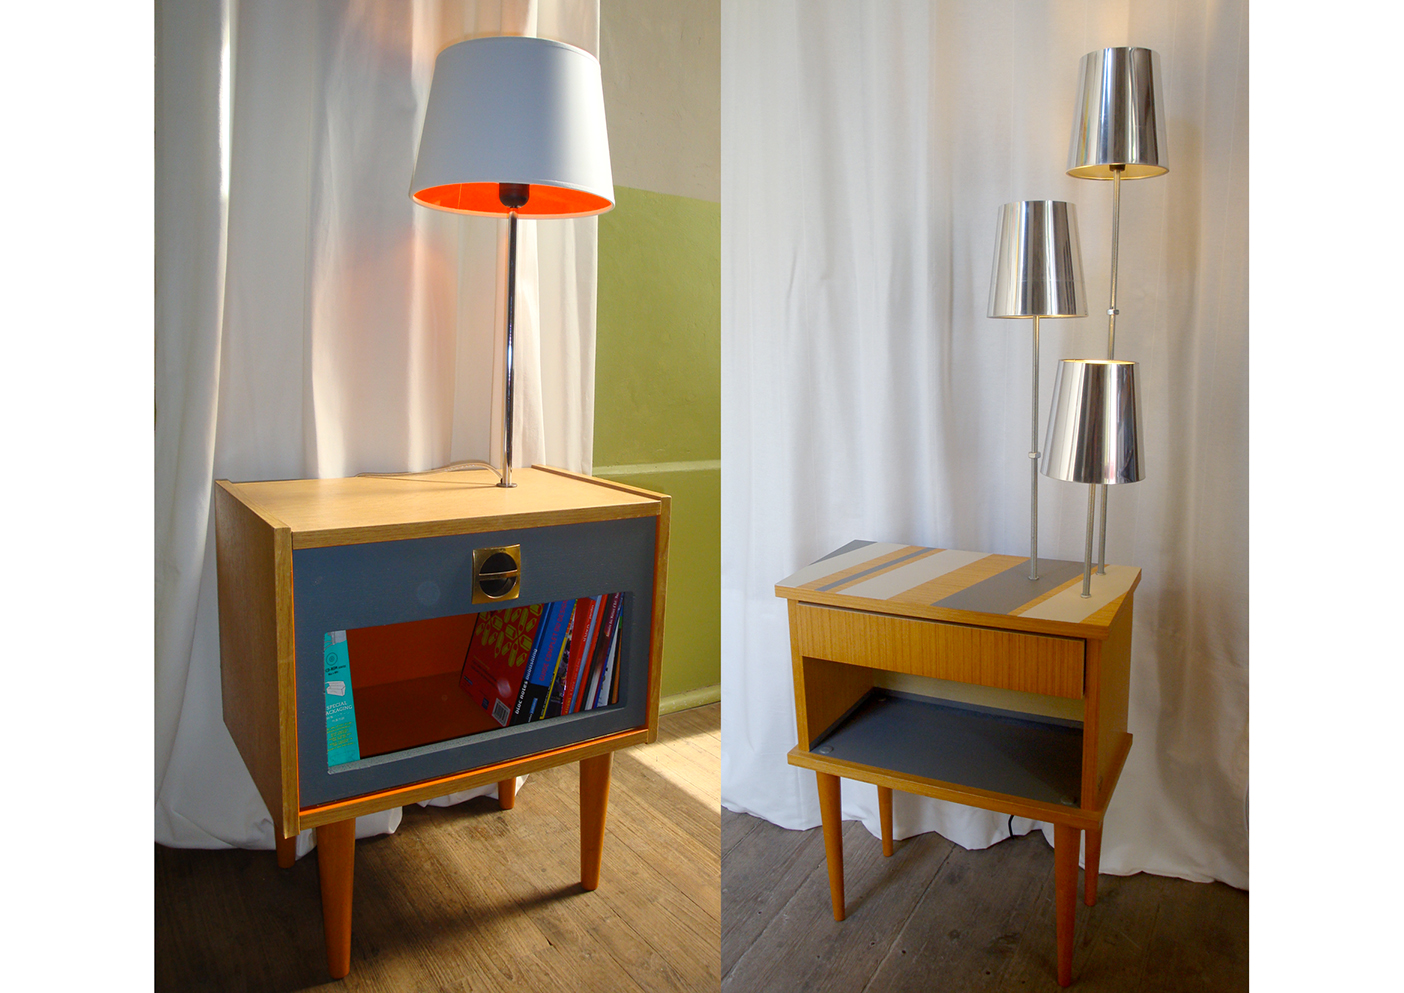 Design & Recyclage